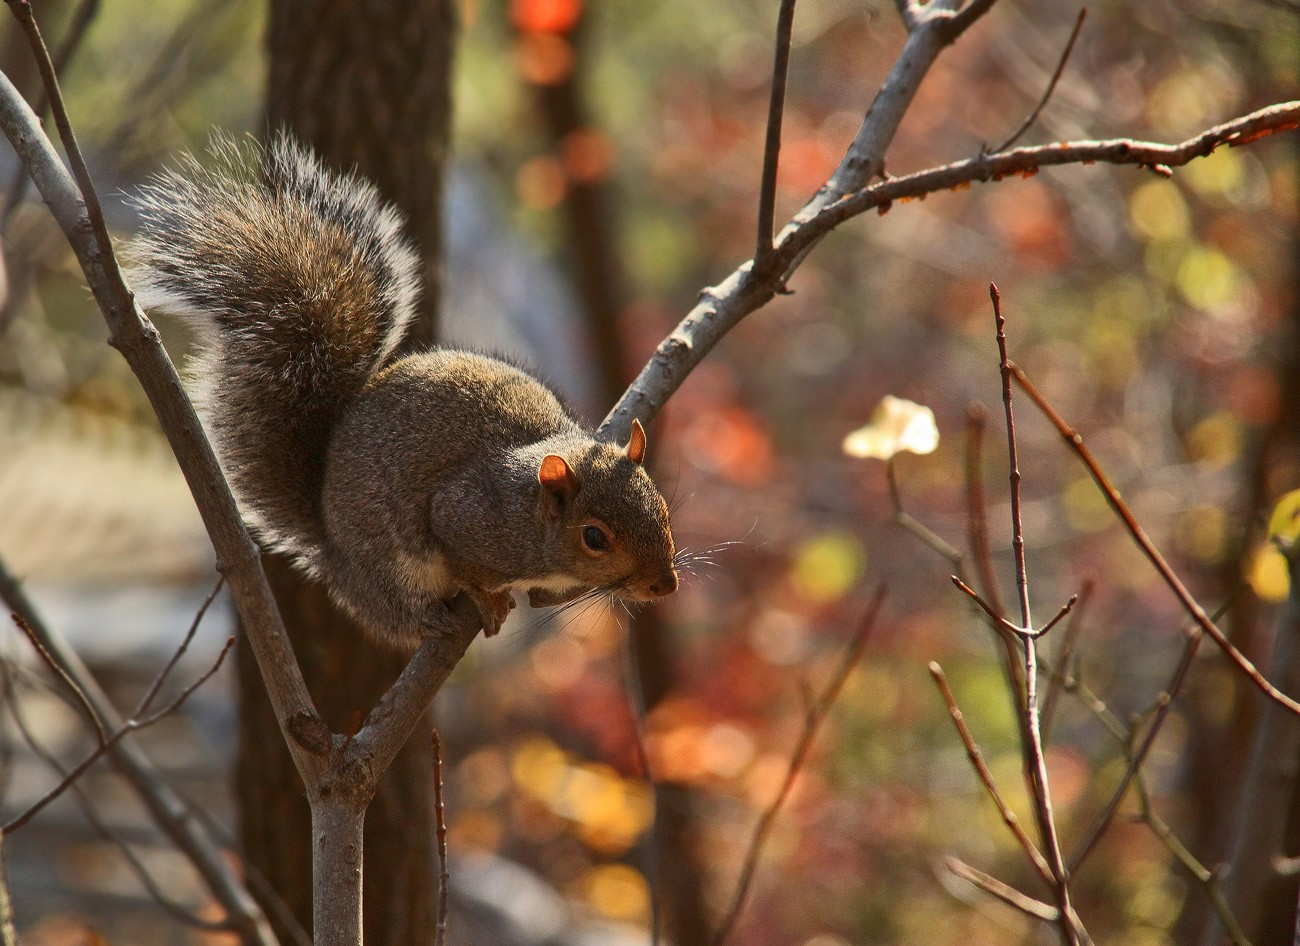 squirrel new river gorge img aw author sava grego gregory and verena